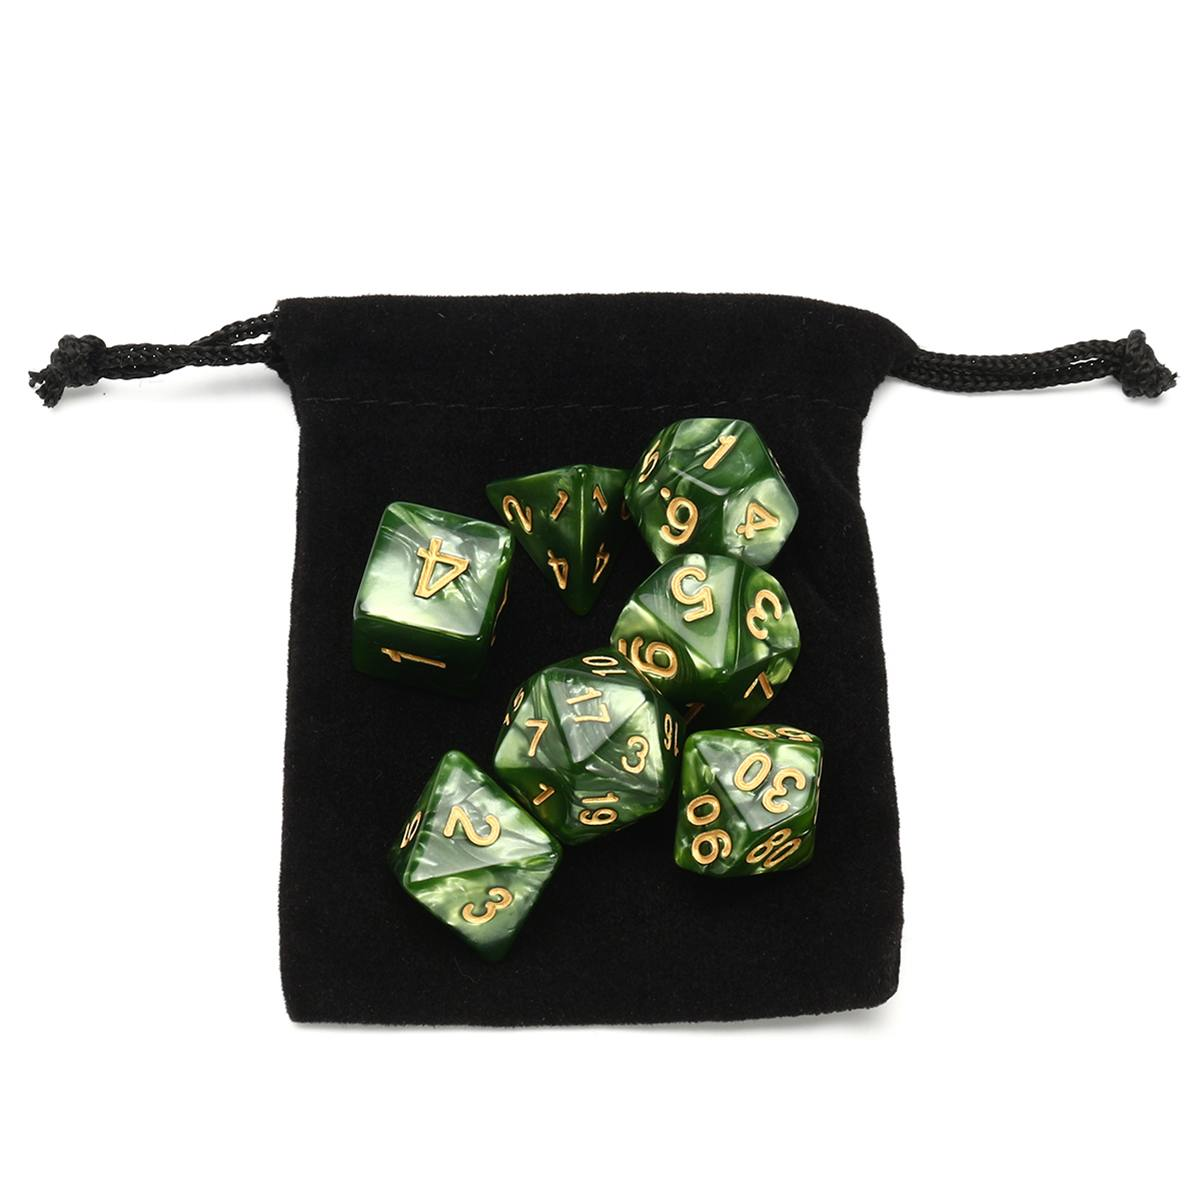 7 Pcs Luminous Green Marble TRPG Polyhedral Glitter Dice Mult-sided RPG Dice Set Gadget Role Playing Dice Board Game With Bag